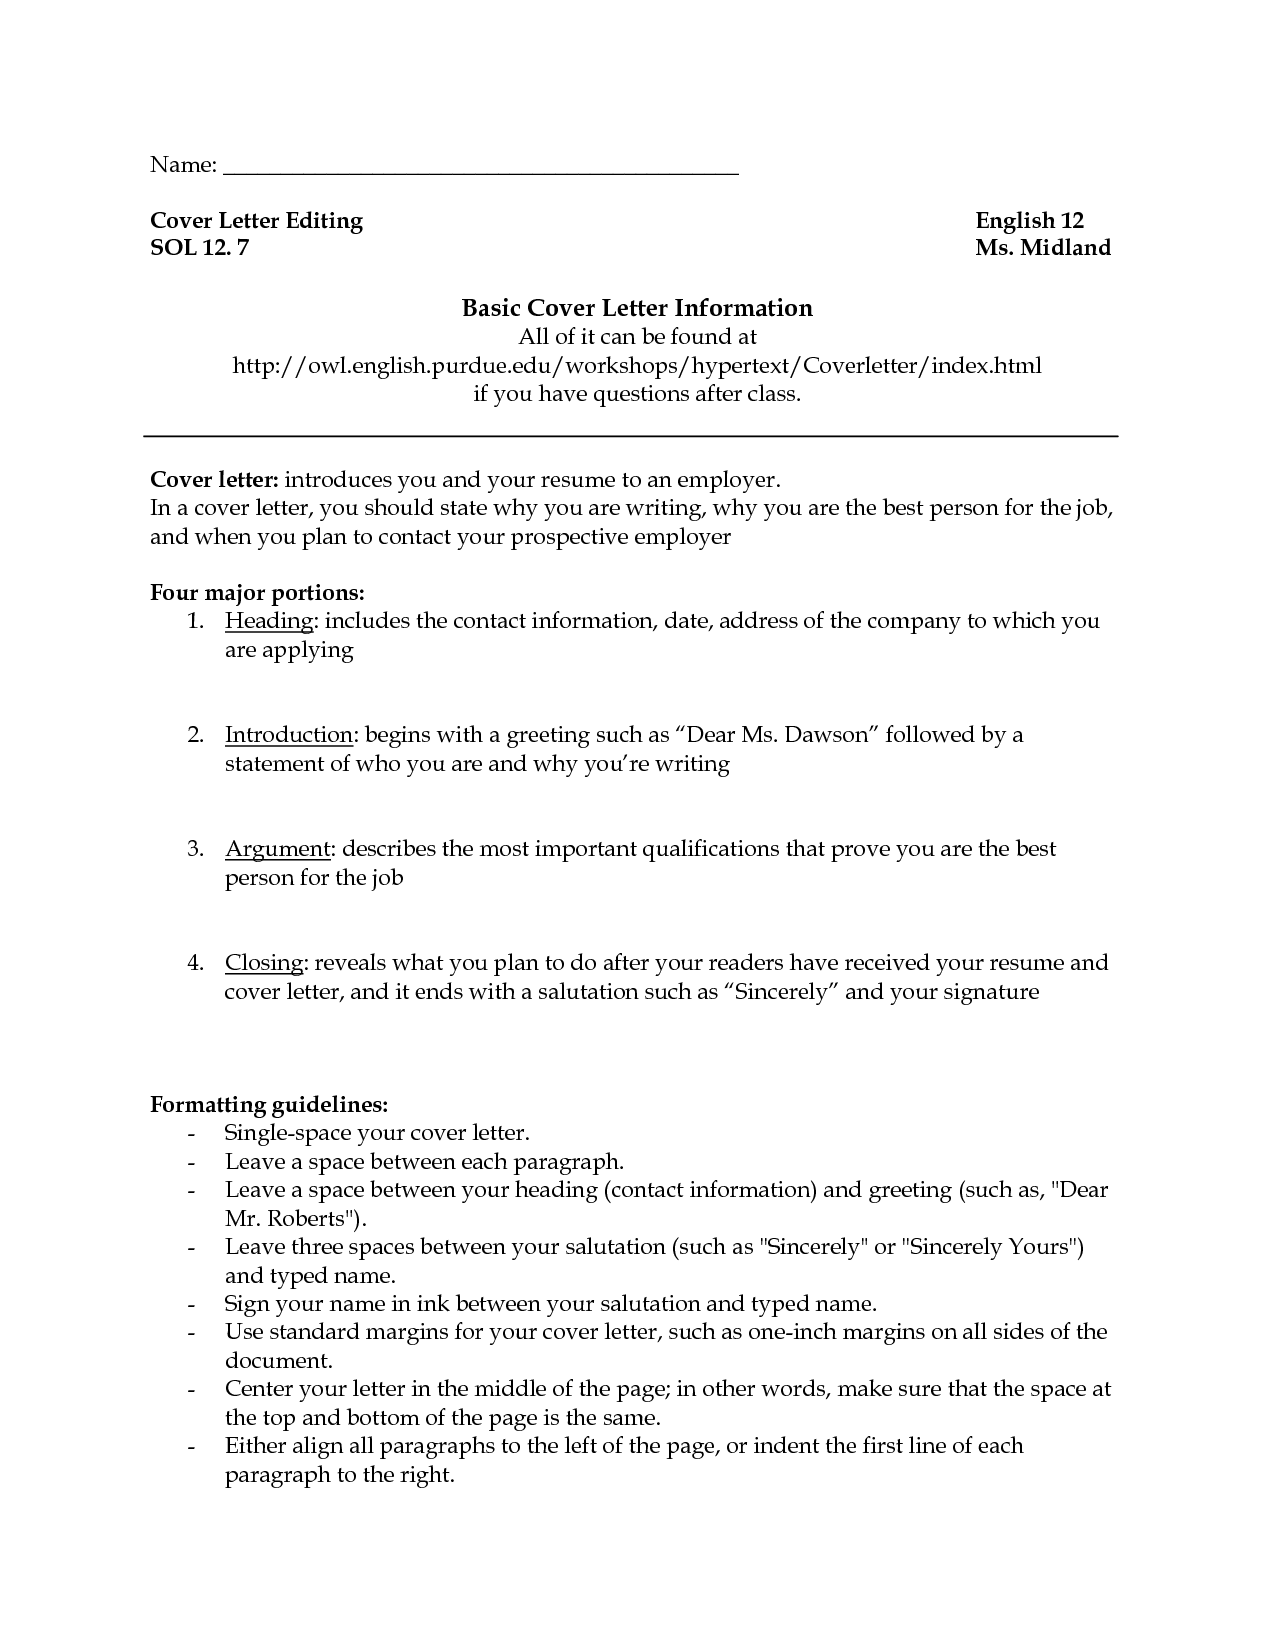 cover letter salutation name addressing unknown person apptiled com unique app finder engine latest reviews market - Resume Cover Letter Salutation